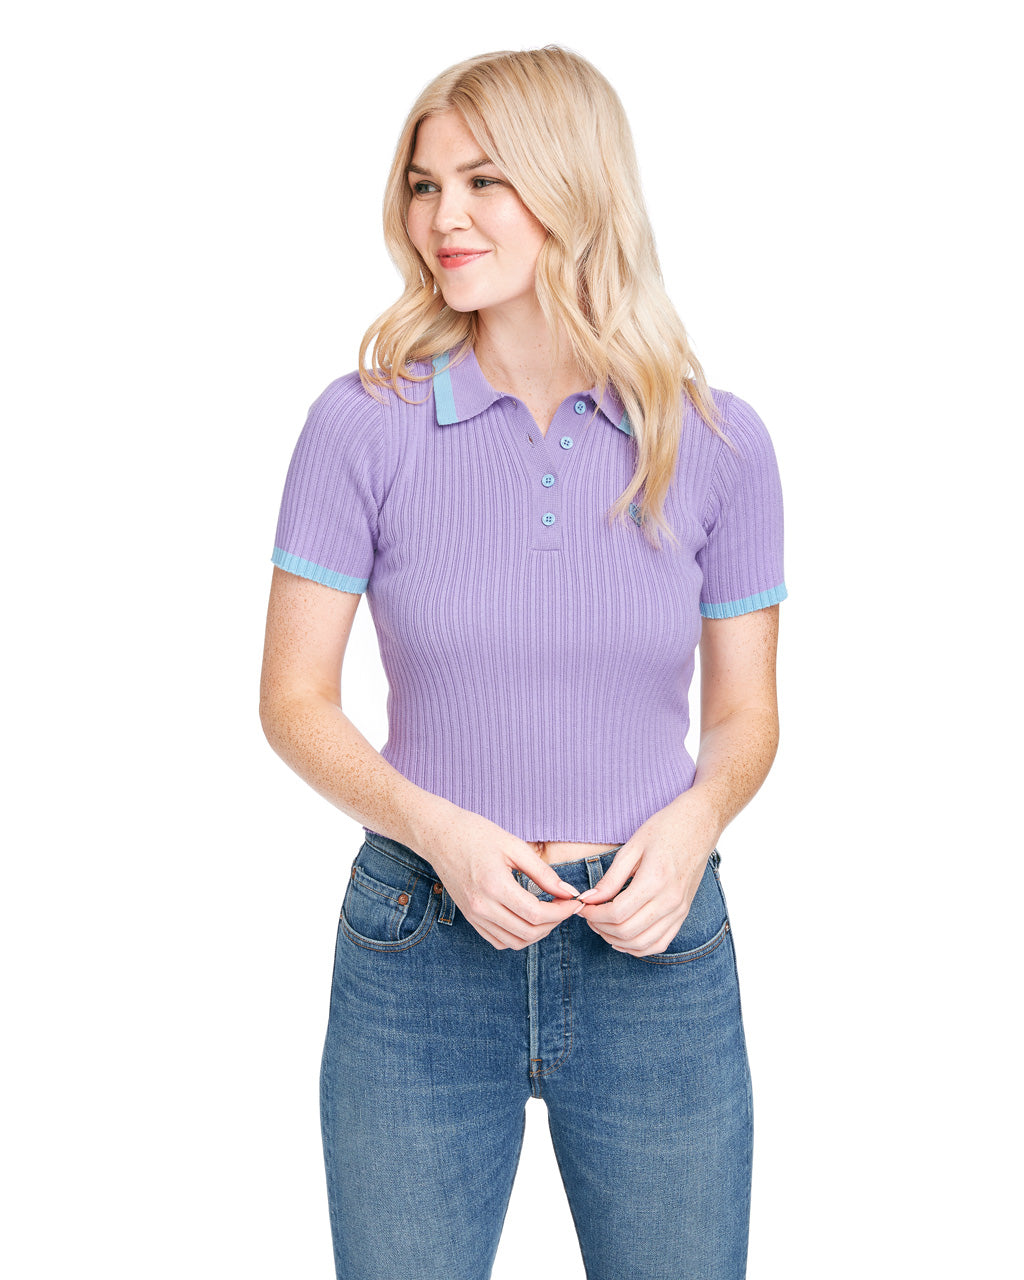 Purple knit with blue trim and embroidered heart logo.